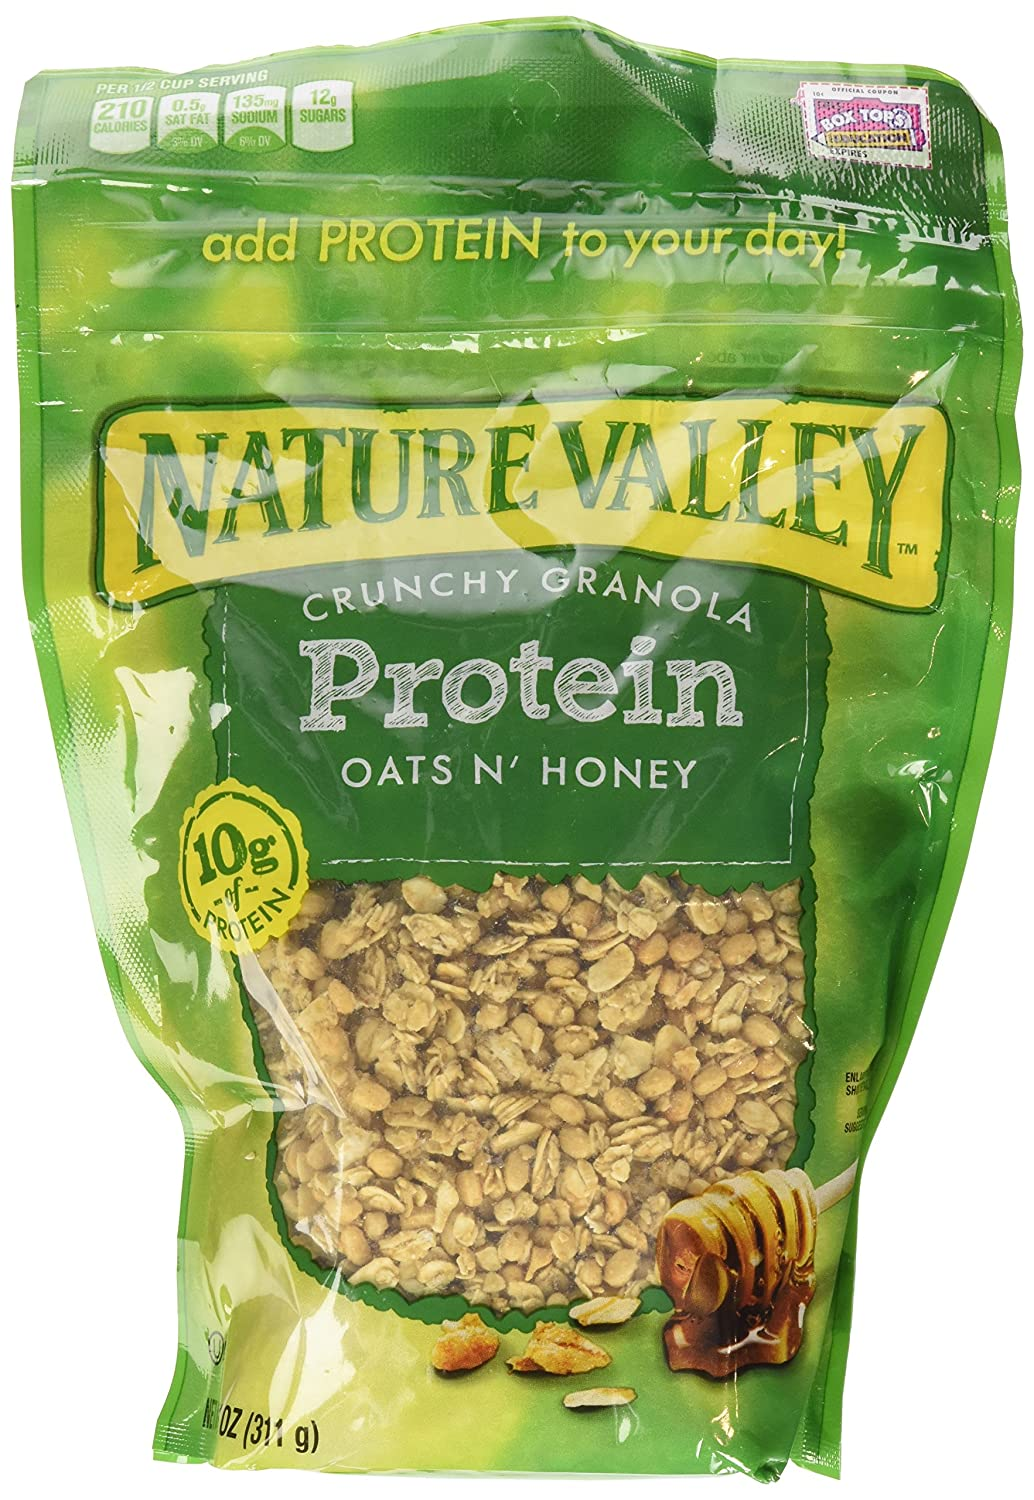 Amazon.com: Nature Valley, High Protein Granola, Oats and Honey, 11oz Bag (Pack of 4): Granola Breakfast Cereals